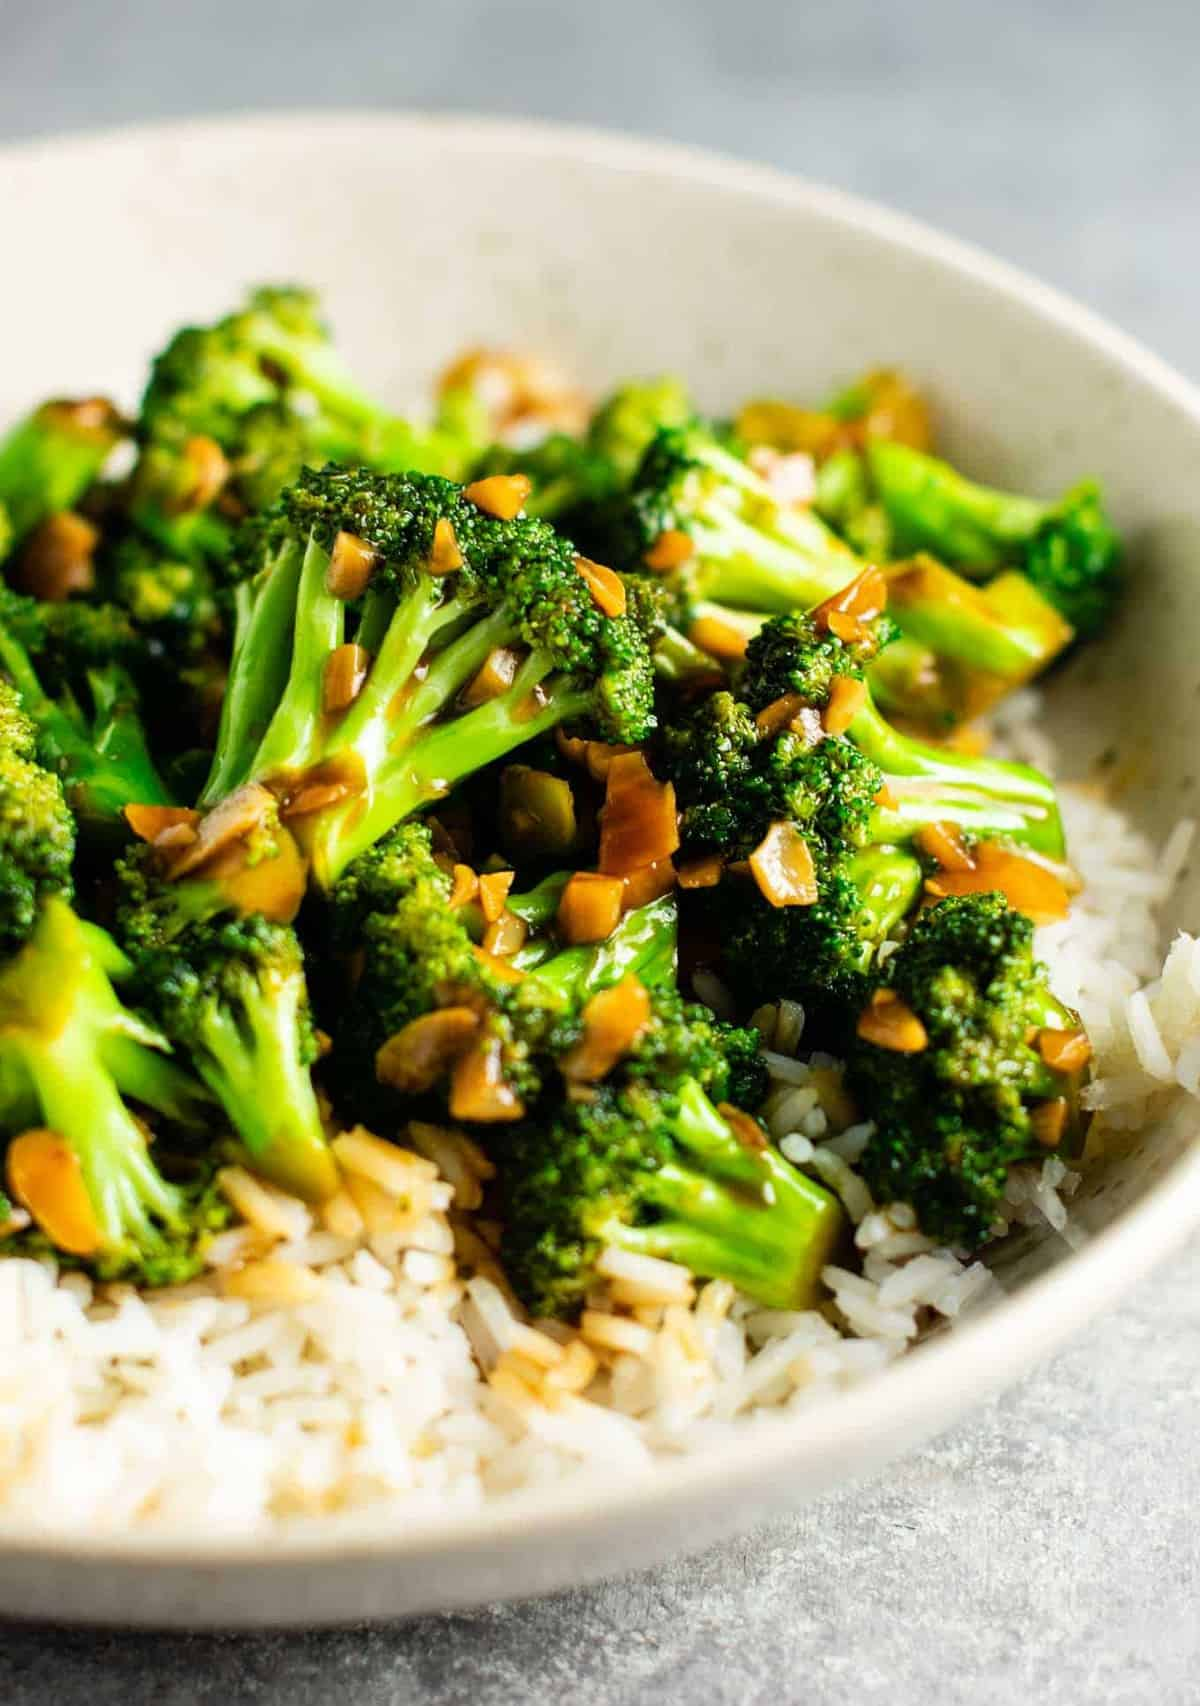 Trendy Broccoli Garlic Sauce Broccoli Garlic Sauce Recipe Build Your Bite Stir Fry Broccoli Stems Pioneer Woman Stir Fry Broccoli Ken nice food Stir Fry Broccoli